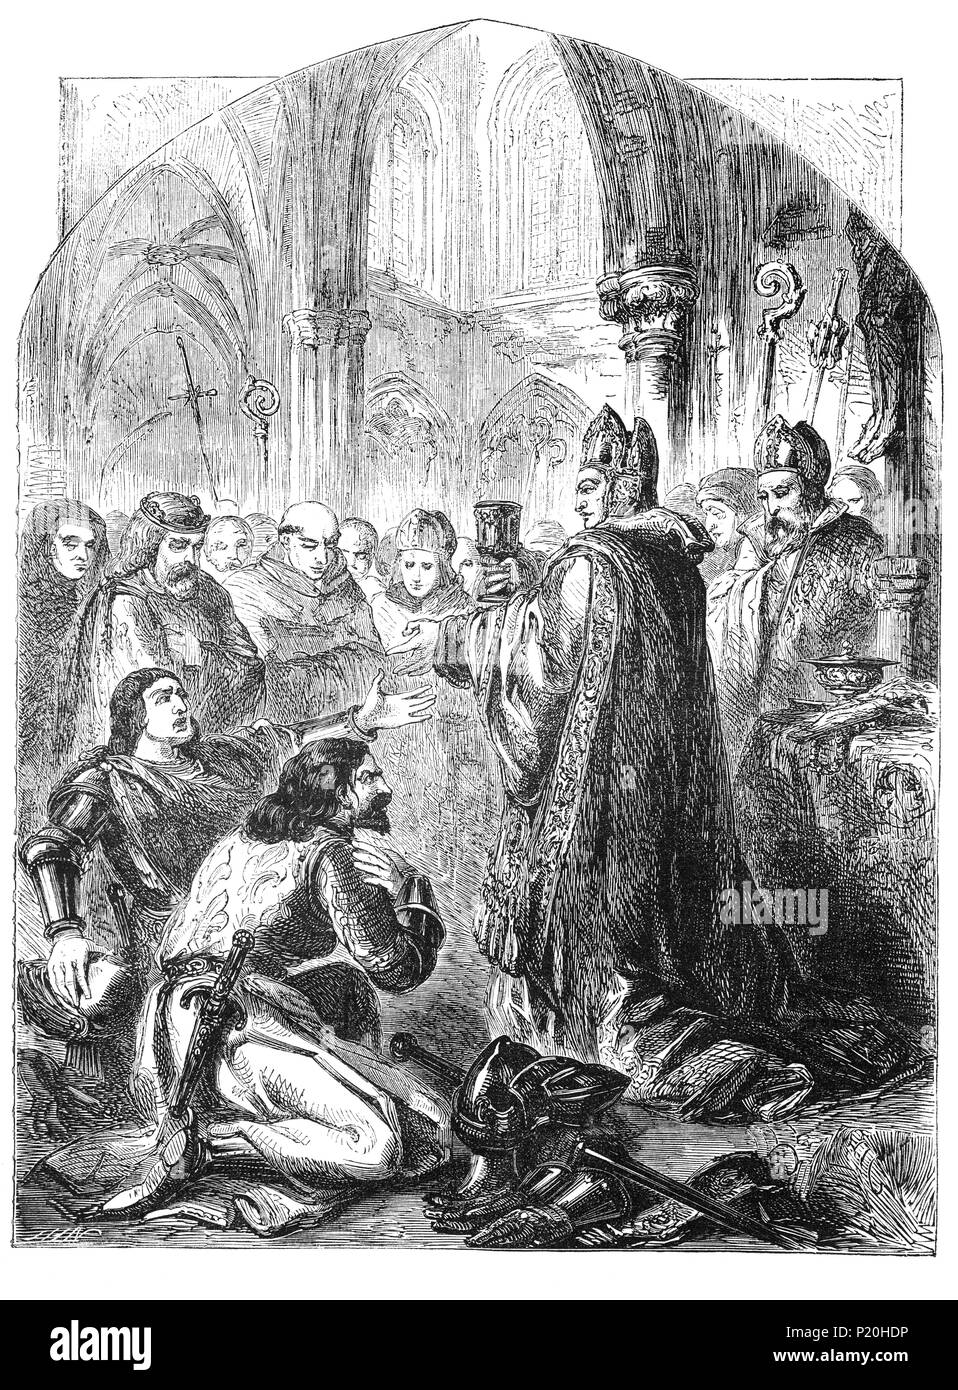 John, Duke of Berry, served as a mediator between the House of Orléans (Armagnac faction) and the House of Burgundy (Burgundian faction) and organised a reconciliation in the Church of the Augustines during the Armagnac–Burgundian Civil War,  a conflict between the two cadet branches of the French royal family from 1407 to 1435. It began during a lull in the Hundred Years' War against the English and overlapped with the Western Schism of the papacy. Stock Photo